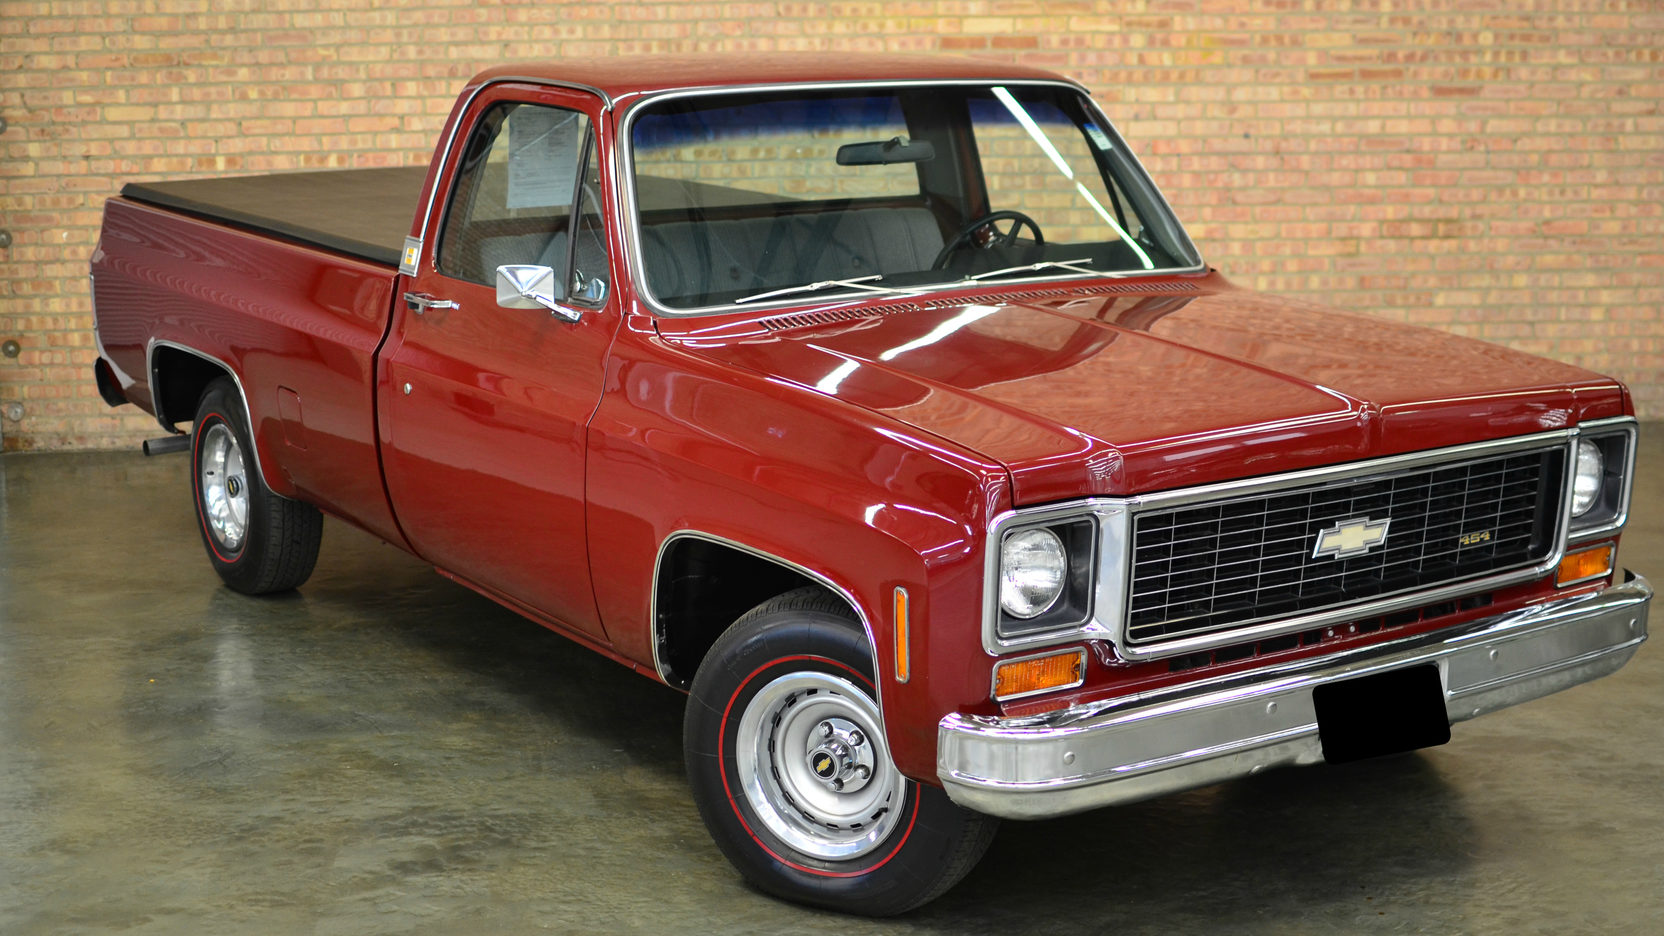 1974 Chevrolet C10 Pickup front 3/4 red